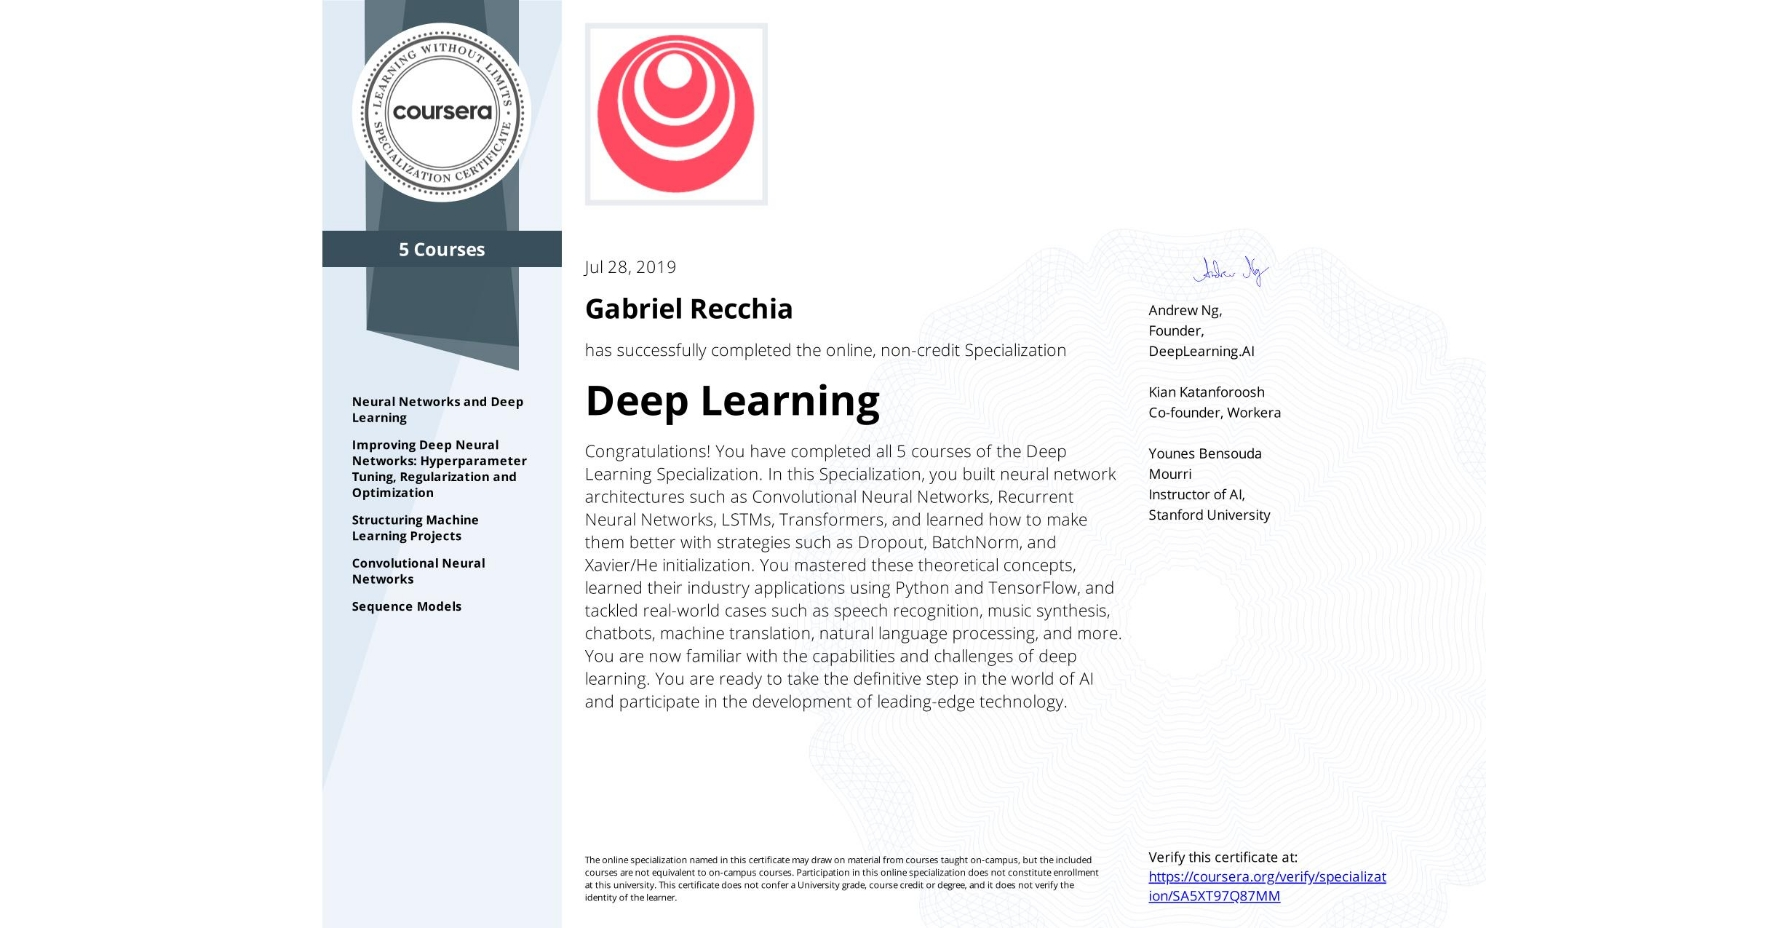 View certificate for Gabriel Recchia, Deep Learning, offered through Coursera. Congratulations! You have completed all 5 courses of the Deep Learning Specialization.  In this Specialization, you built neural network architectures such as Convolutional Neural Networks, Recurrent Neural Networks, LSTMs, Transformers, and learned how to make them better with strategies such as Dropout, BatchNorm, and Xavier/He initialization. You mastered these theoretical concepts, learned their industry applications using Python and TensorFlow, and tackled real-world cases such as speech recognition, music synthesis, chatbots, machine translation, natural language processing, and more.  You are now familiar with the capabilities and challenges of deep learning. You are ready to take the definitive step in the world of AI and participate in the development of leading-edge technology.